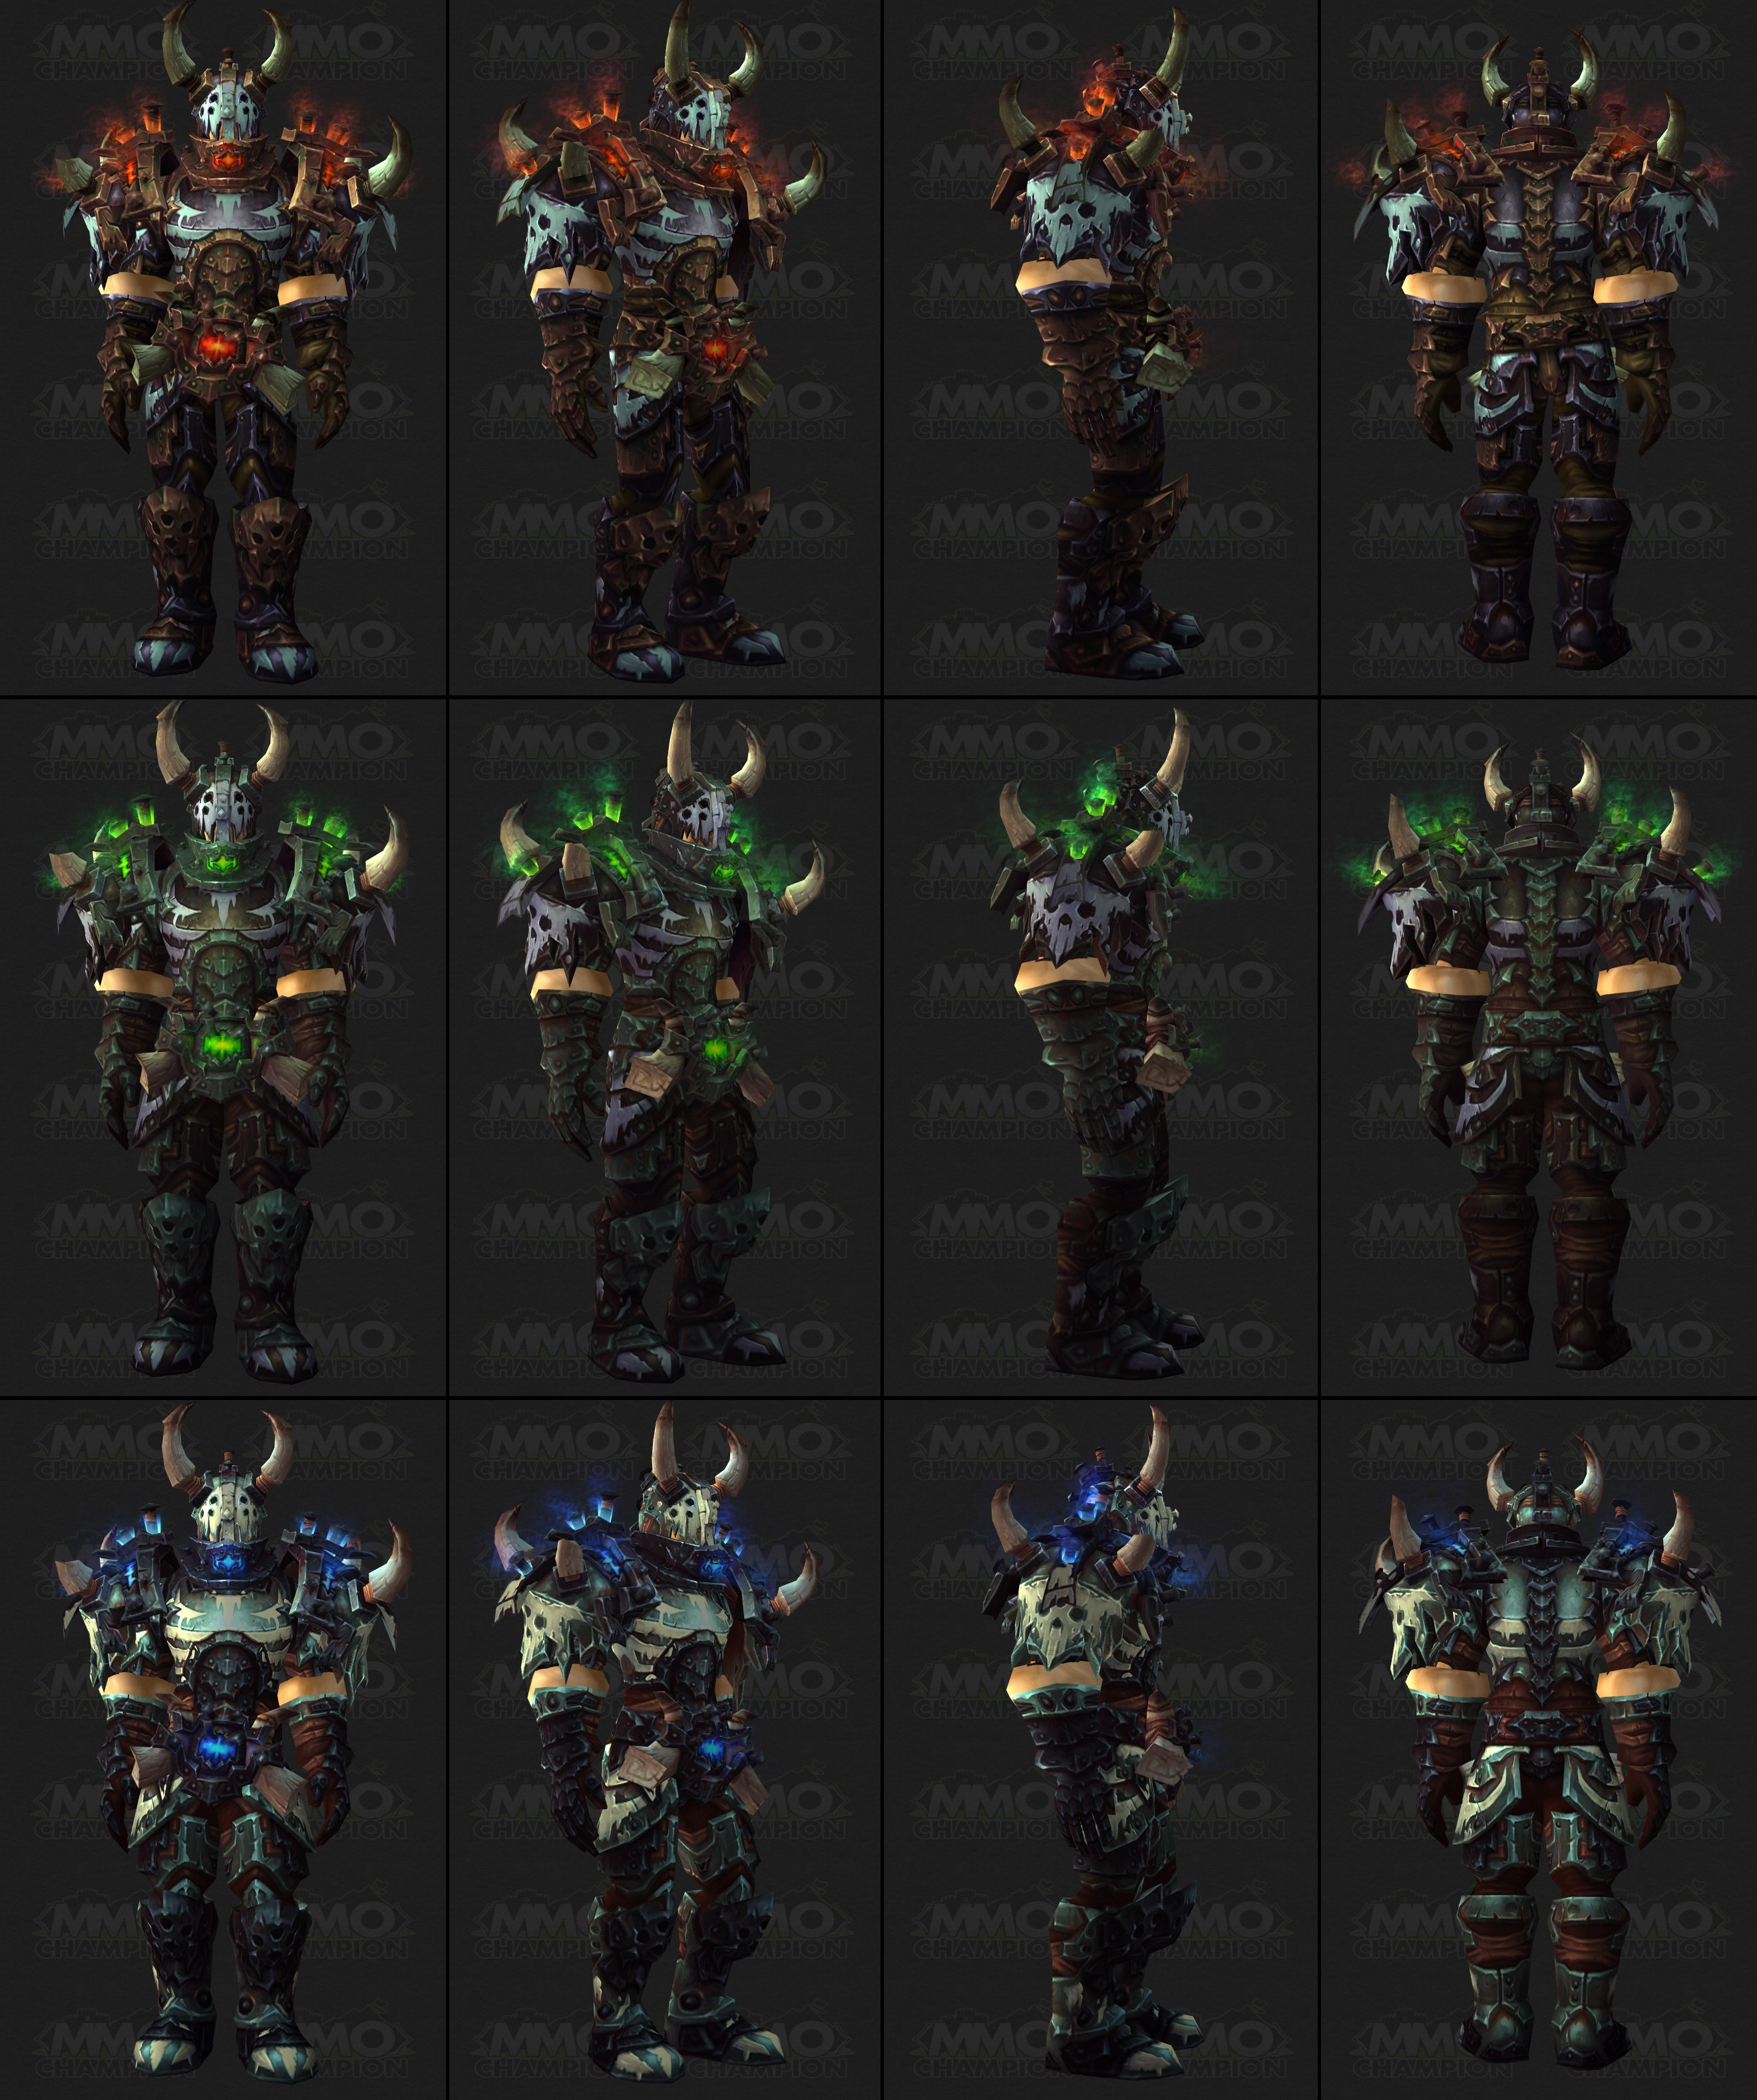 Death knight pvp gear 5 4 for Wow portent 5 4